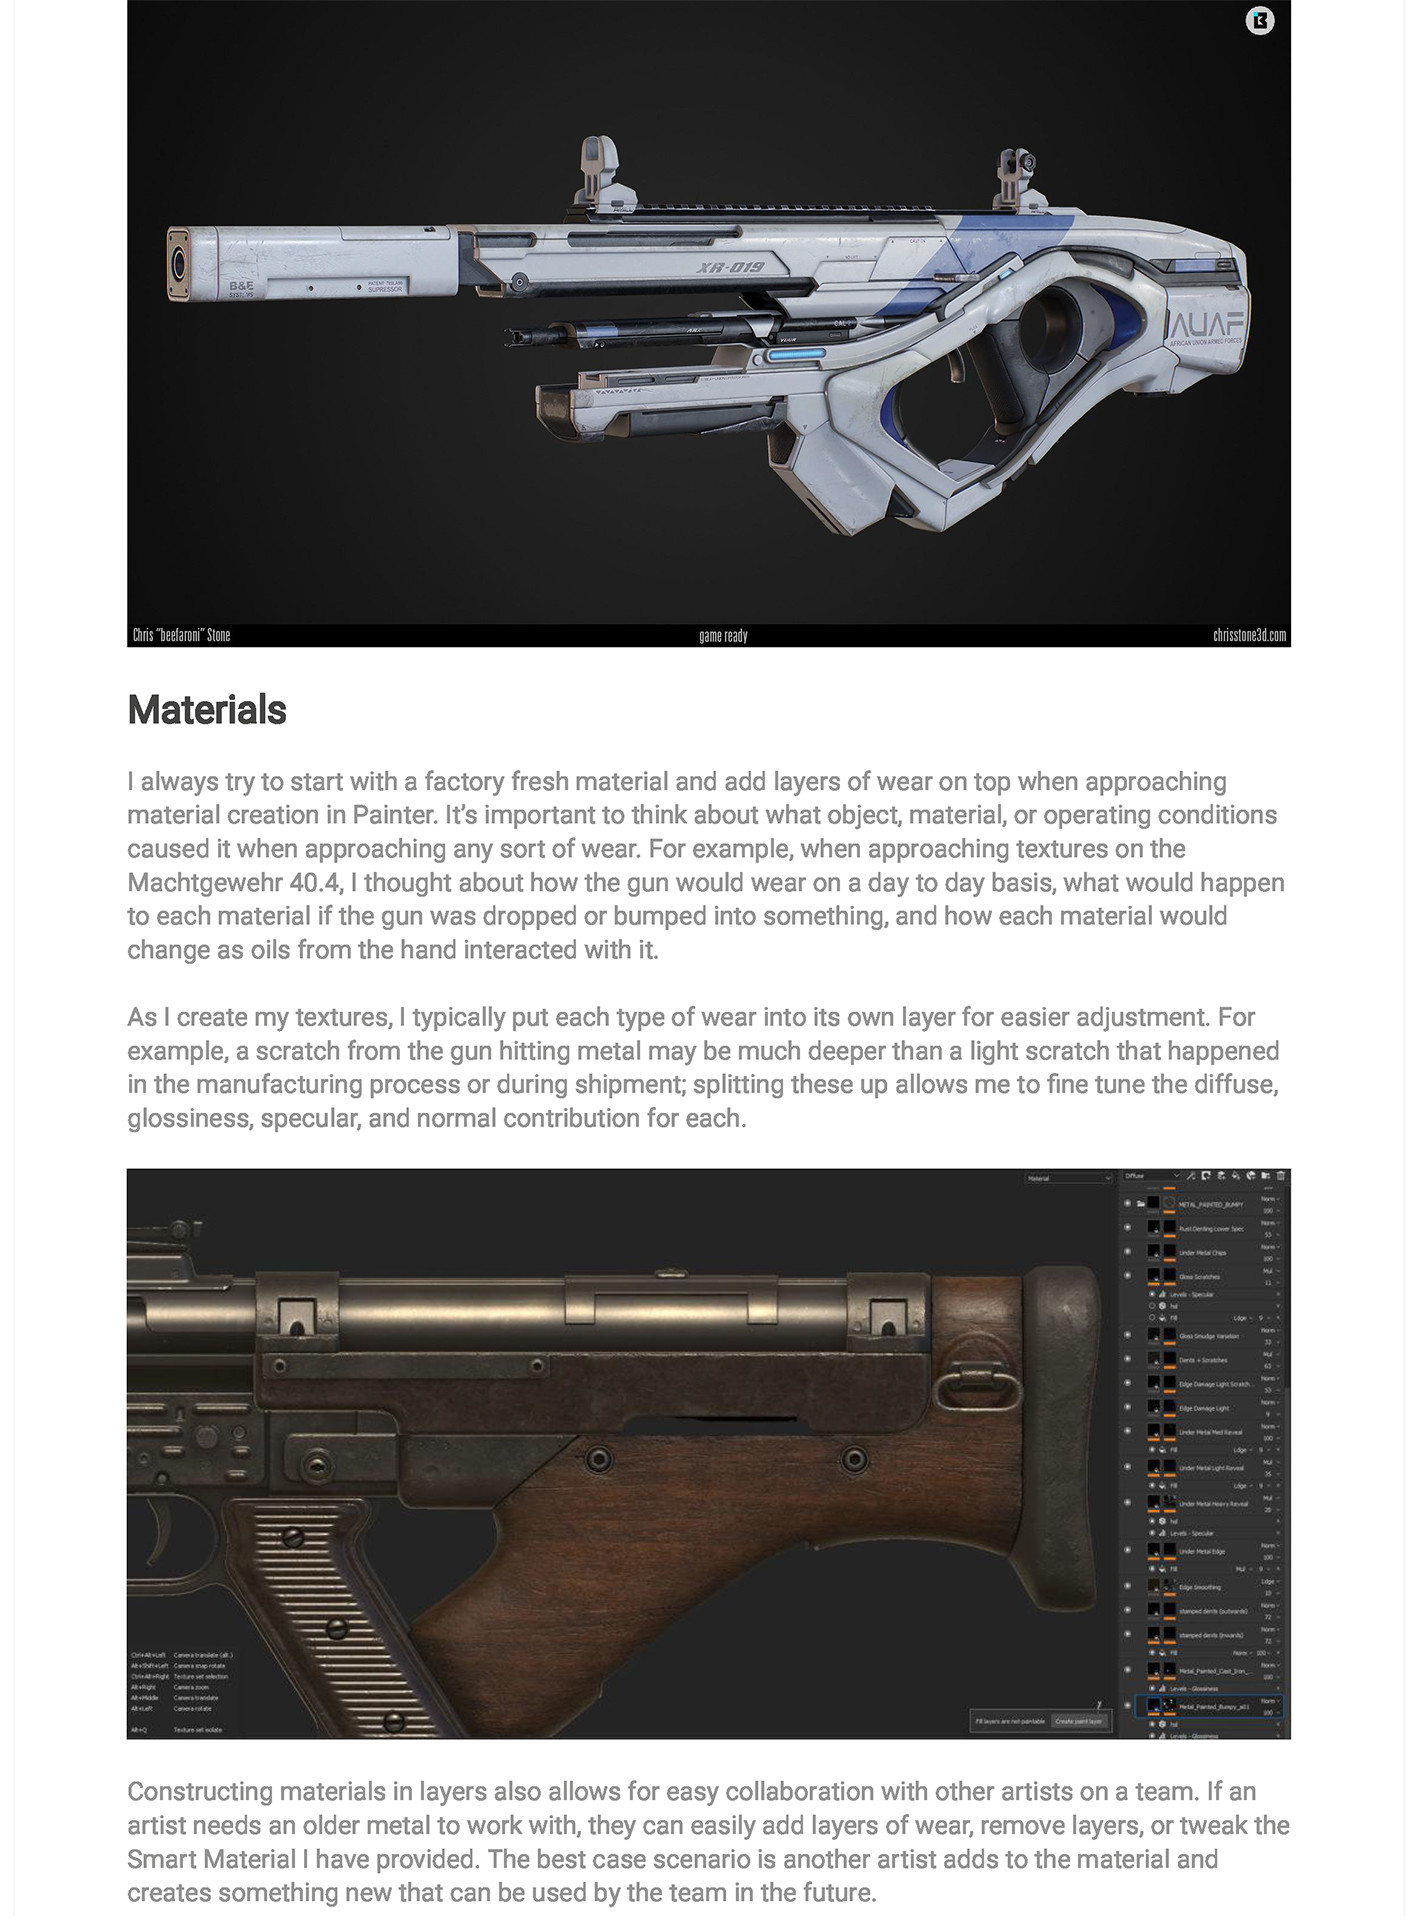 Chris stone experimenting with weapon design page 06